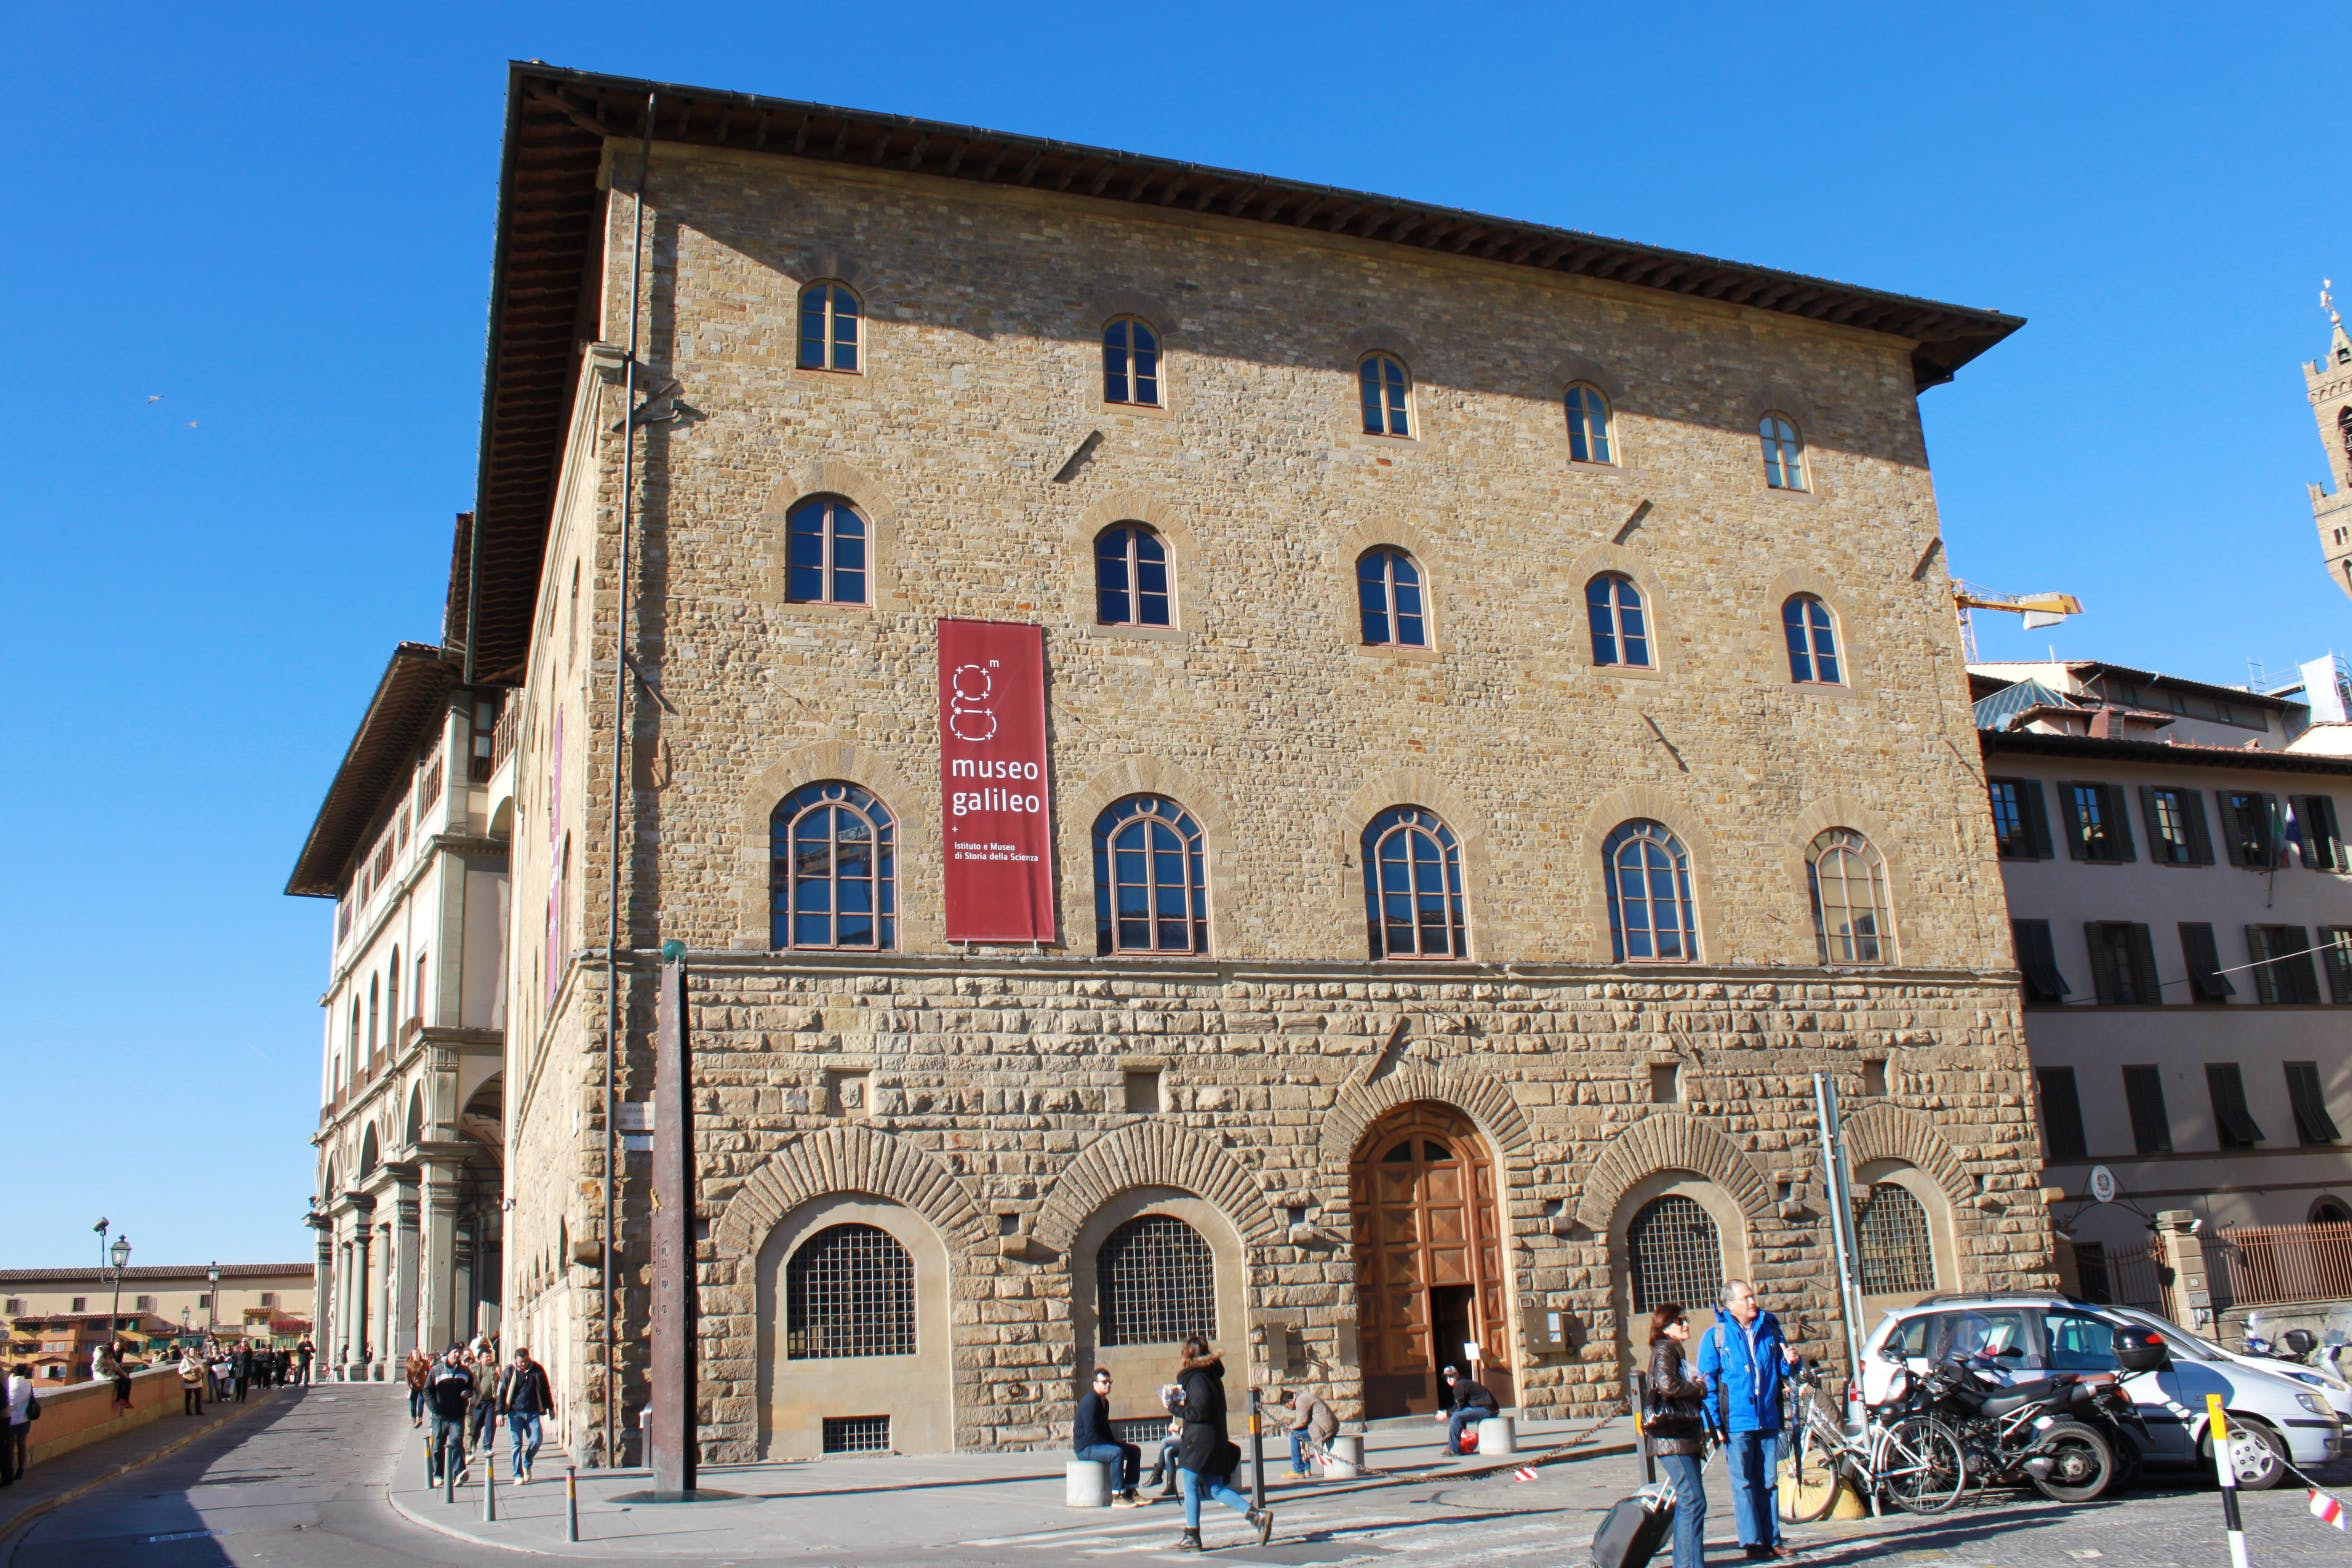 Museo Galileo Firenze.5 Favorite Family Friendly Museums In Florence Museums To Visit